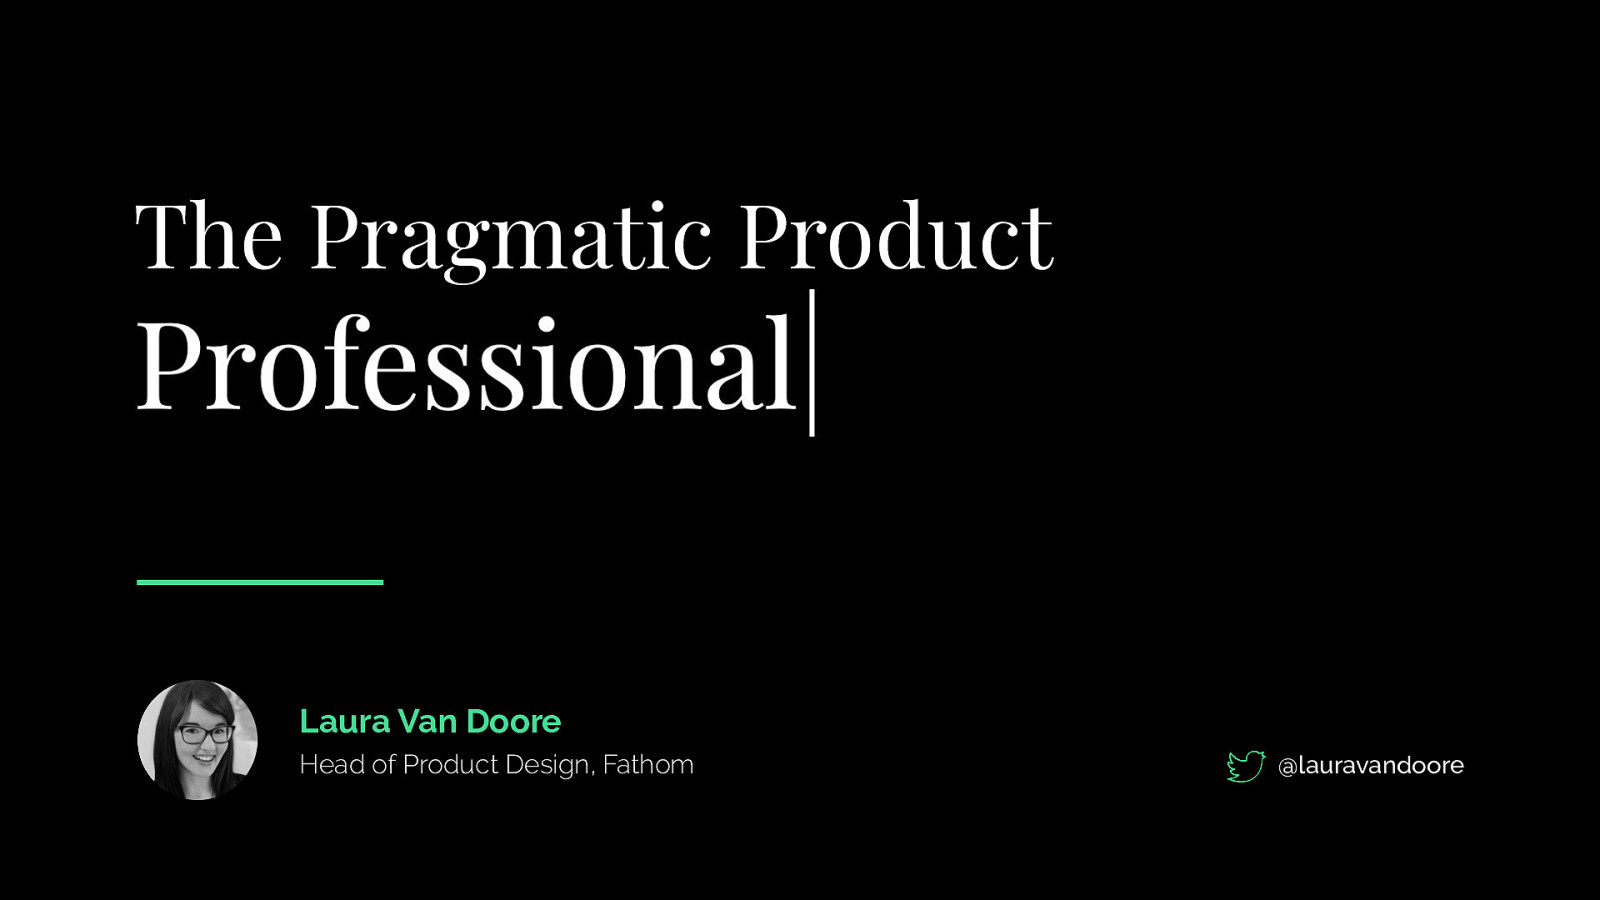 The Pragmatic Product Professional